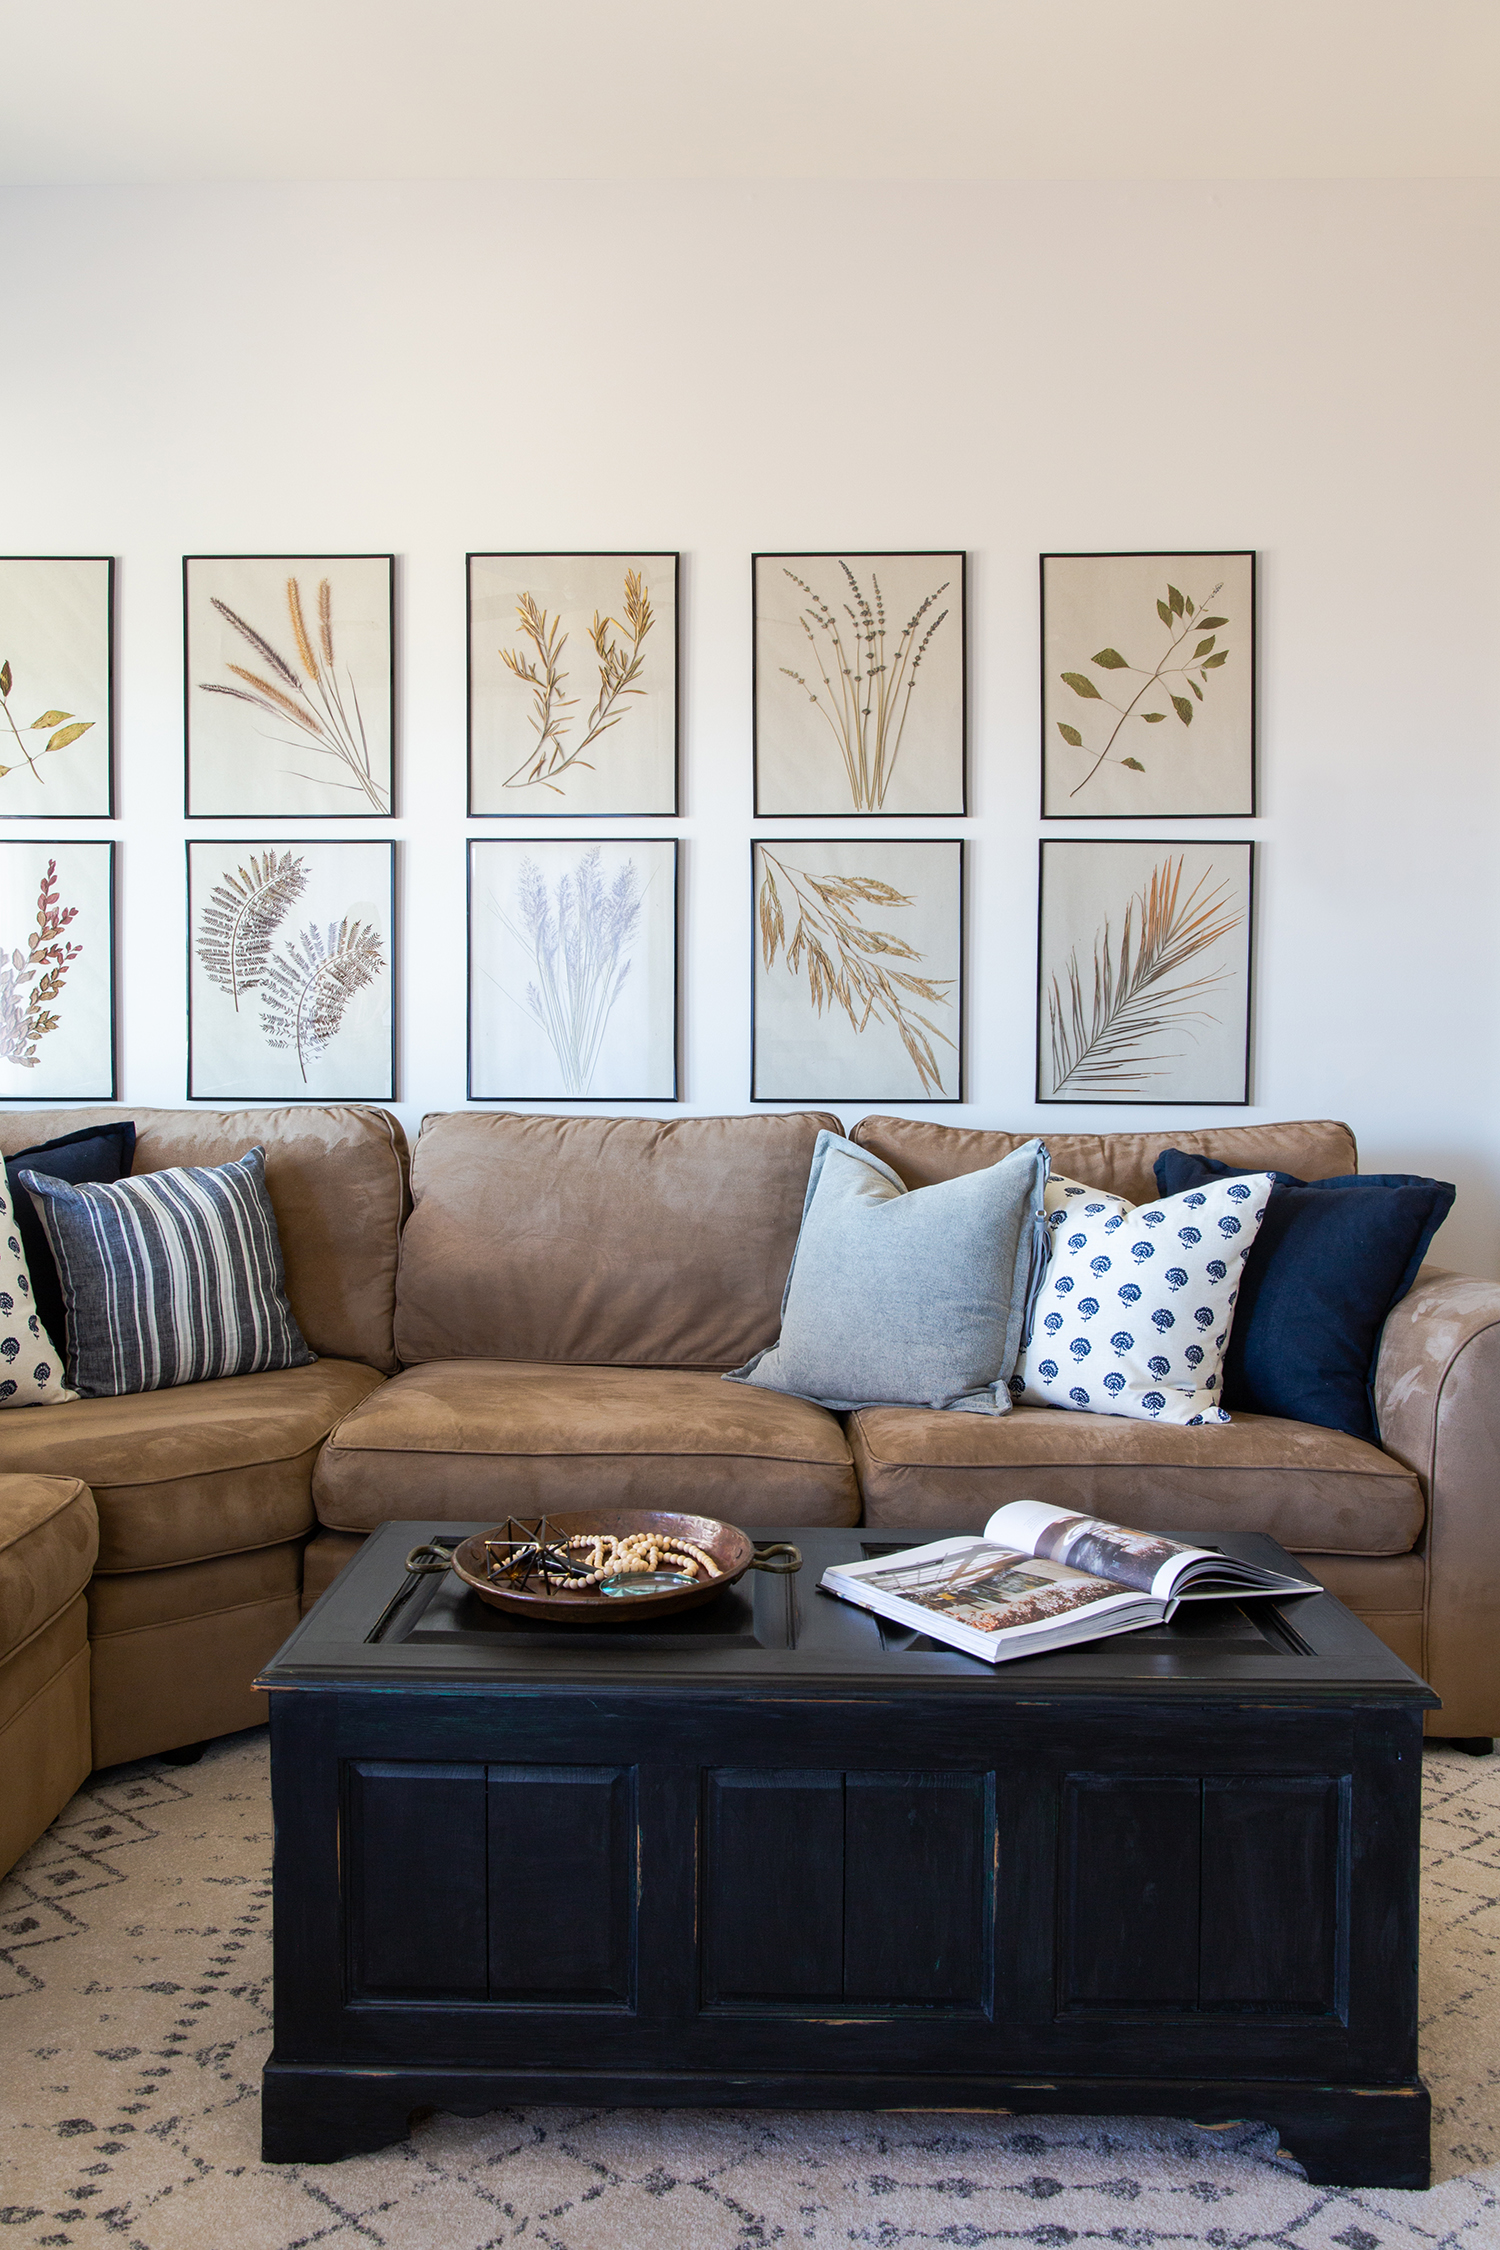 Lounge refresh interior design project by Sundling Studio in Southern California